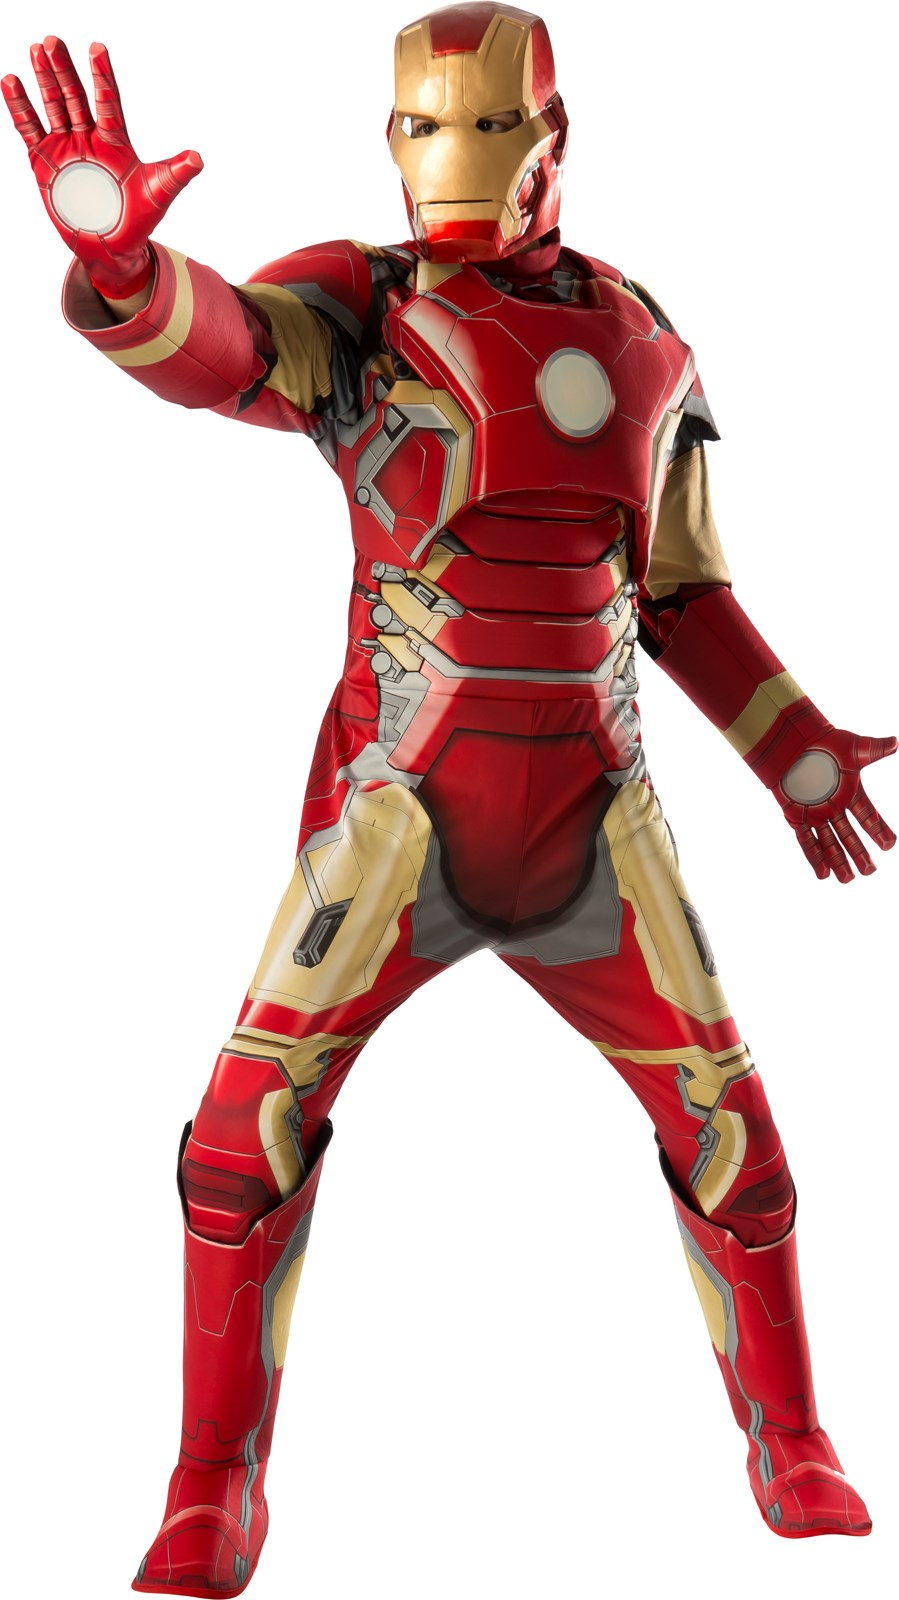 "Avengers 2 - Age of Ultron: Iron Man ""Mark 43"" Deluxe Costume For Adults X-Large (42-46)"